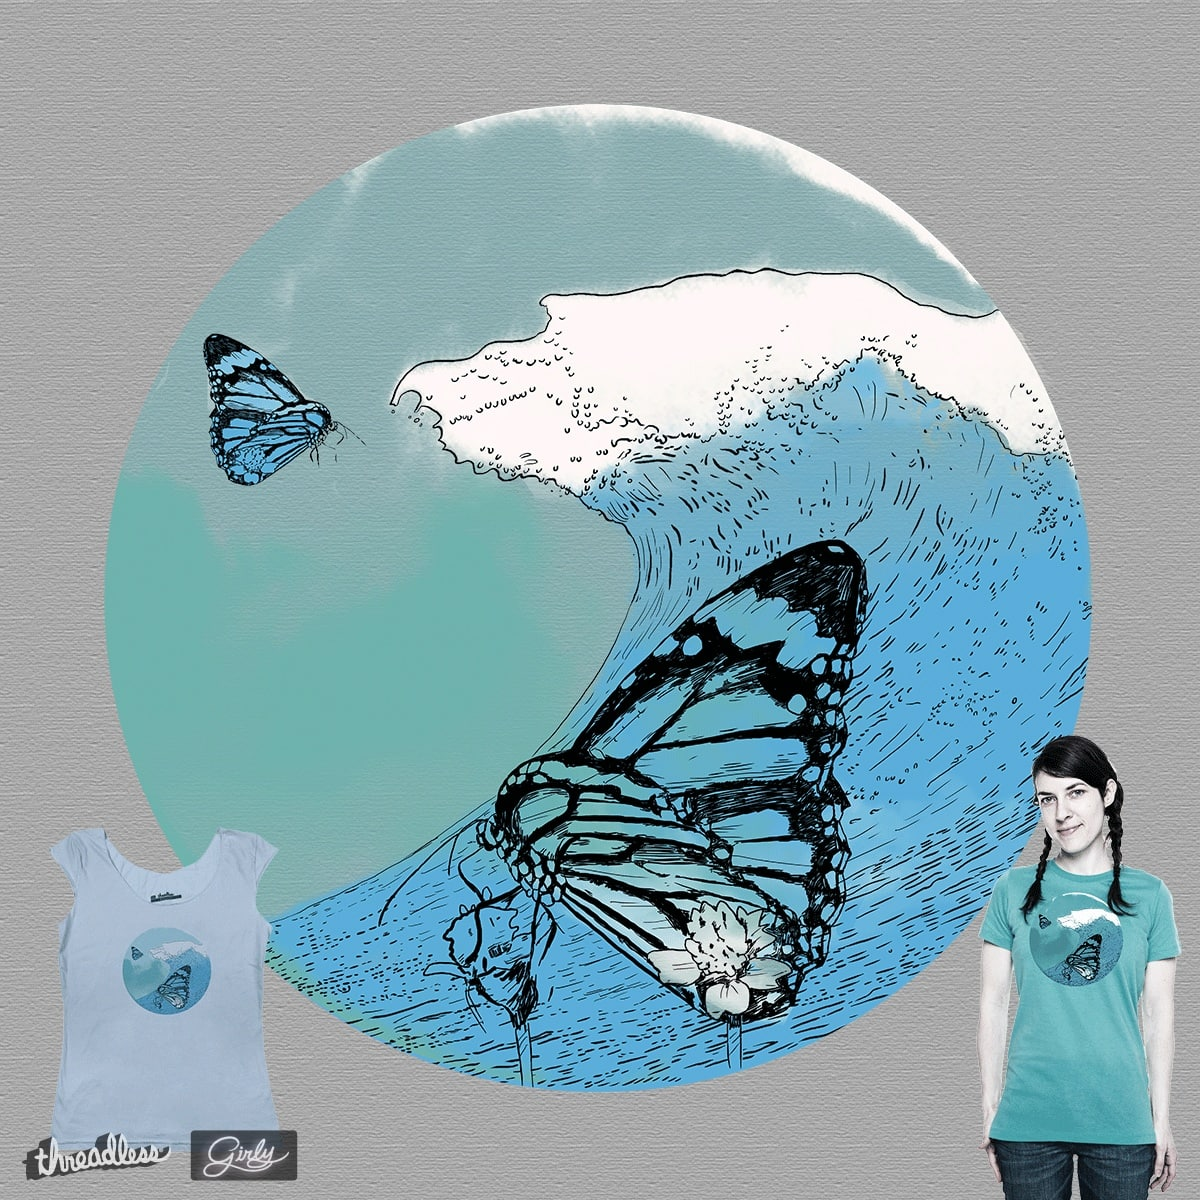 Butterfly Wave by Thomas Orrow on Threadless